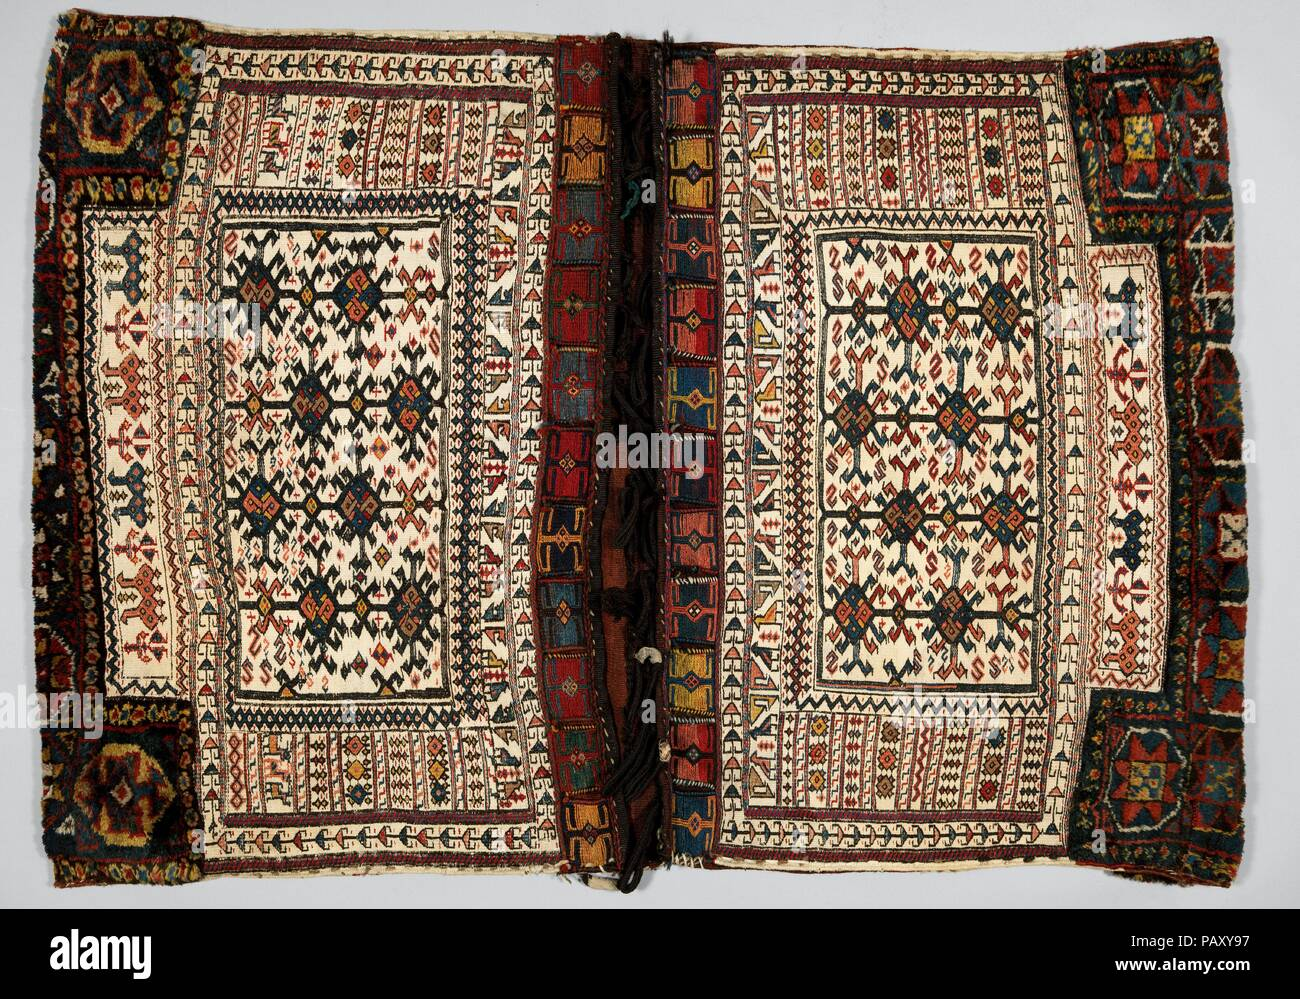 Double Flour Bag. Dimensions: H. 40 1/2 in. (102.9 cm)  W. 56 in. (142.2 cm). Date: last quarter 19th century.  The large double flour bags created by Bakhtiari weavers usually feature pile with symmetrical knots at the bottom to protect the bag in areas of extreme wear. Unlike the other Bakhtiari double flour bag on view (MMA 2015.490.8), the ground here is executed in weft-faced plain weave using white cotton, and the patterning is made in sumak extra-weft wrapping with wool threads. The weaver chose to decorate the bag with repeating lozenges and other geometric motifs, as well as stylized  - Stock Image